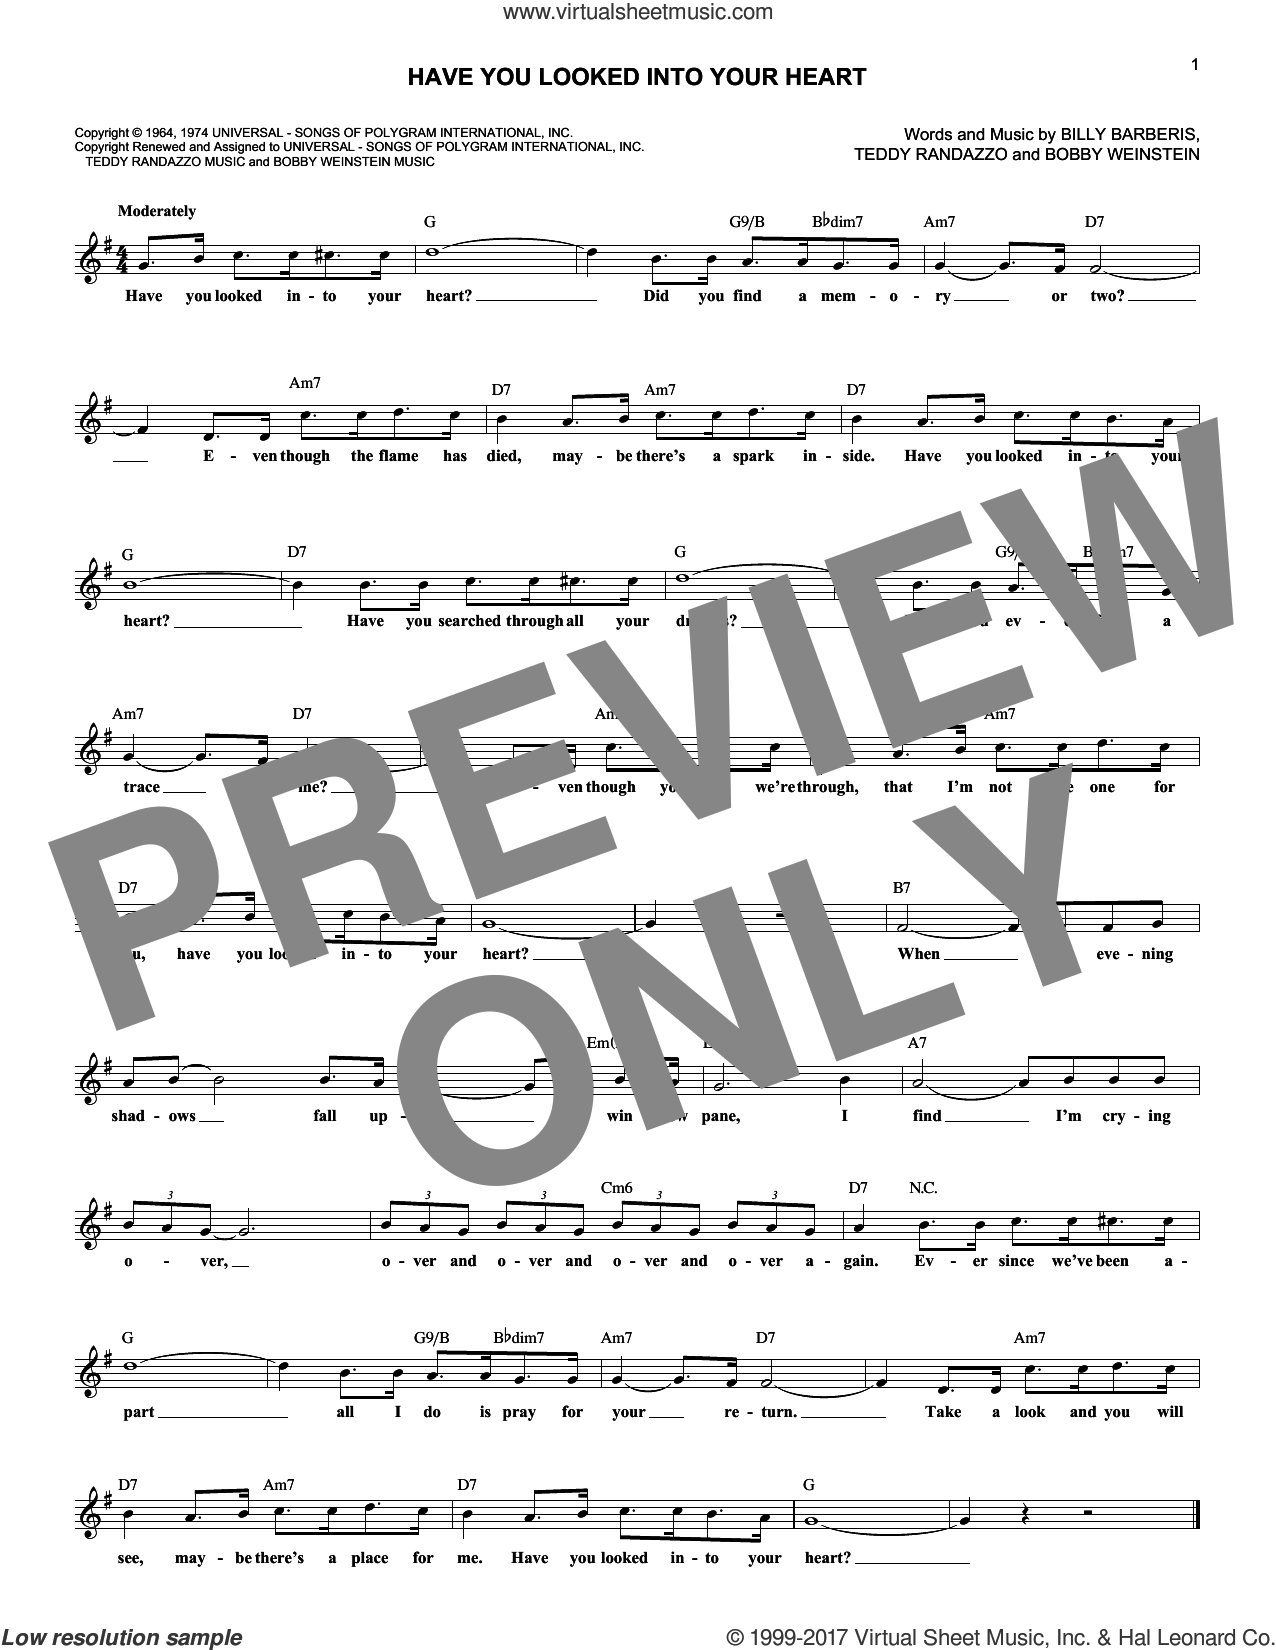 Have You Looked Into Your Heart sheet music for voice and other instruments (fake book) by Jerry Vale. Score Image Preview.